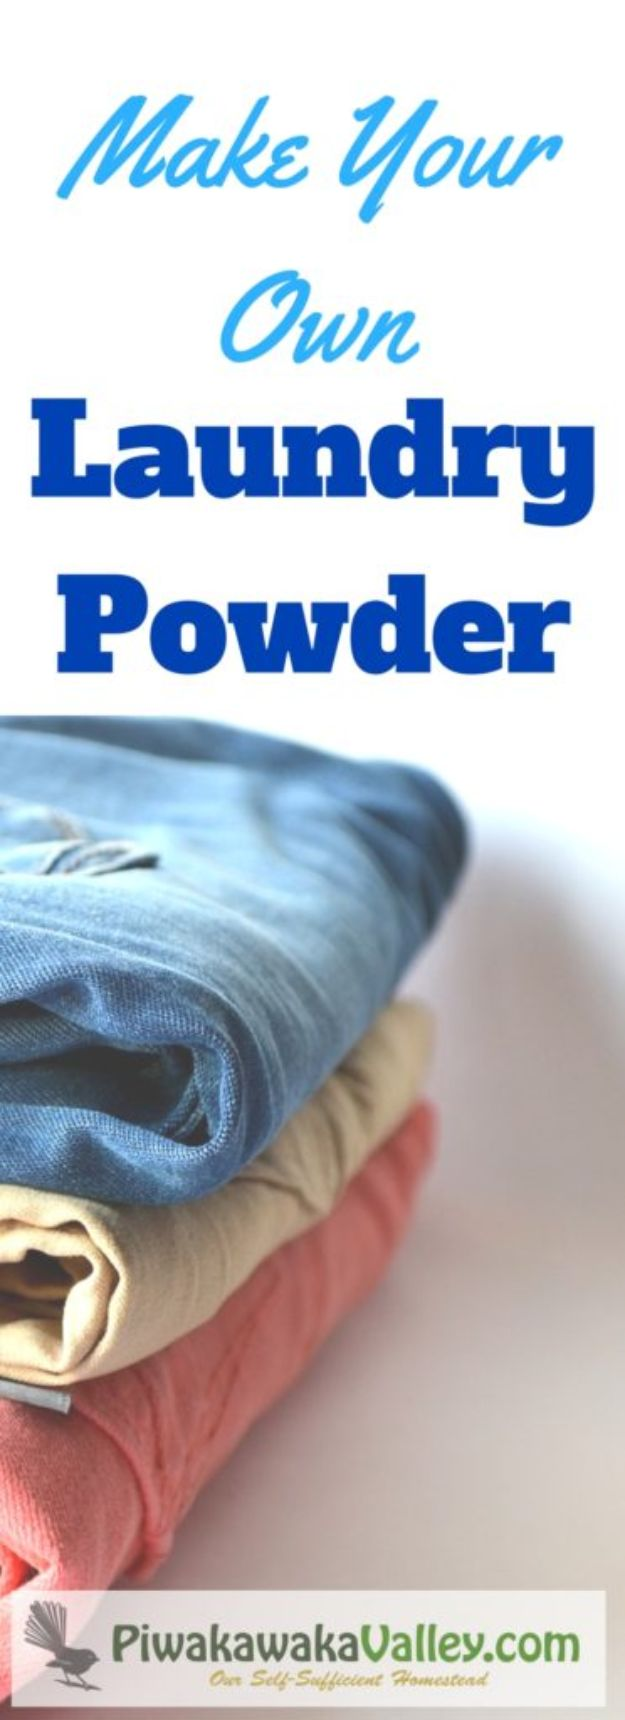 Laundry Detergent Recipes - Make Your Own Laundry Powder - DIY Detergents and Cleaning Recipe Tutorials for Homemade Inexpensive Cleaners You Can Make At Home #recipes #laundry